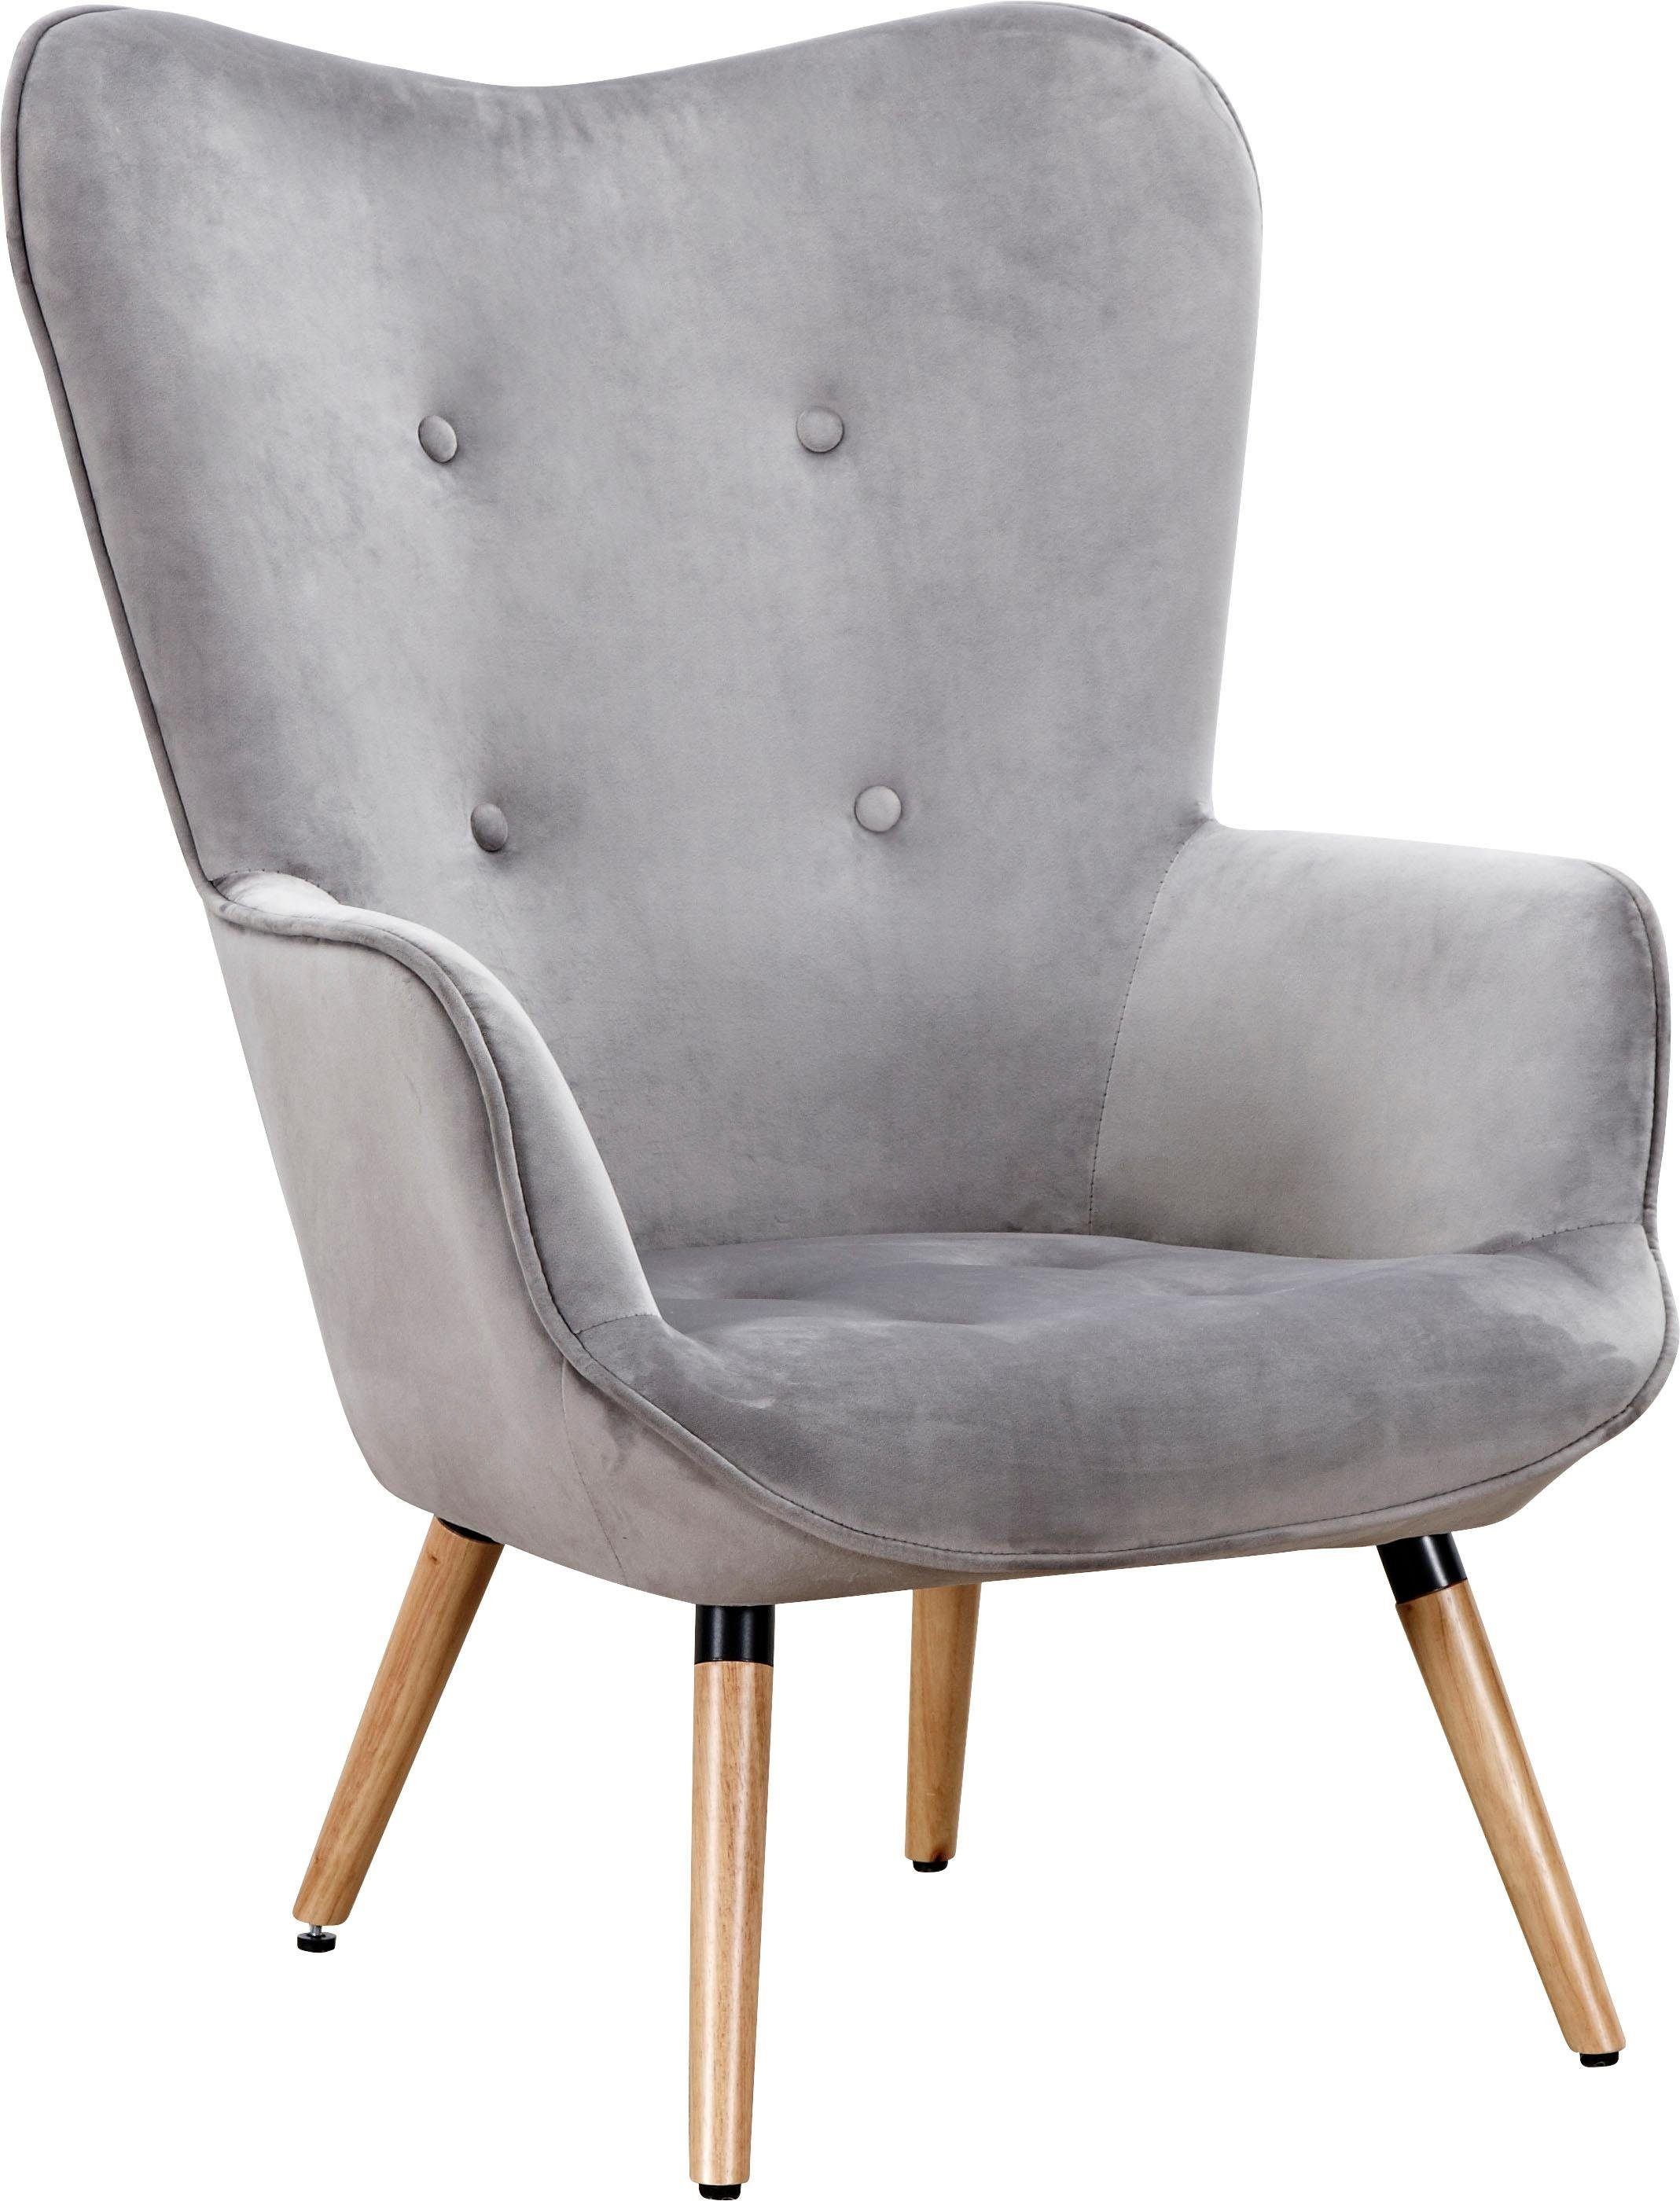 ATLANTIC home collection Sessel